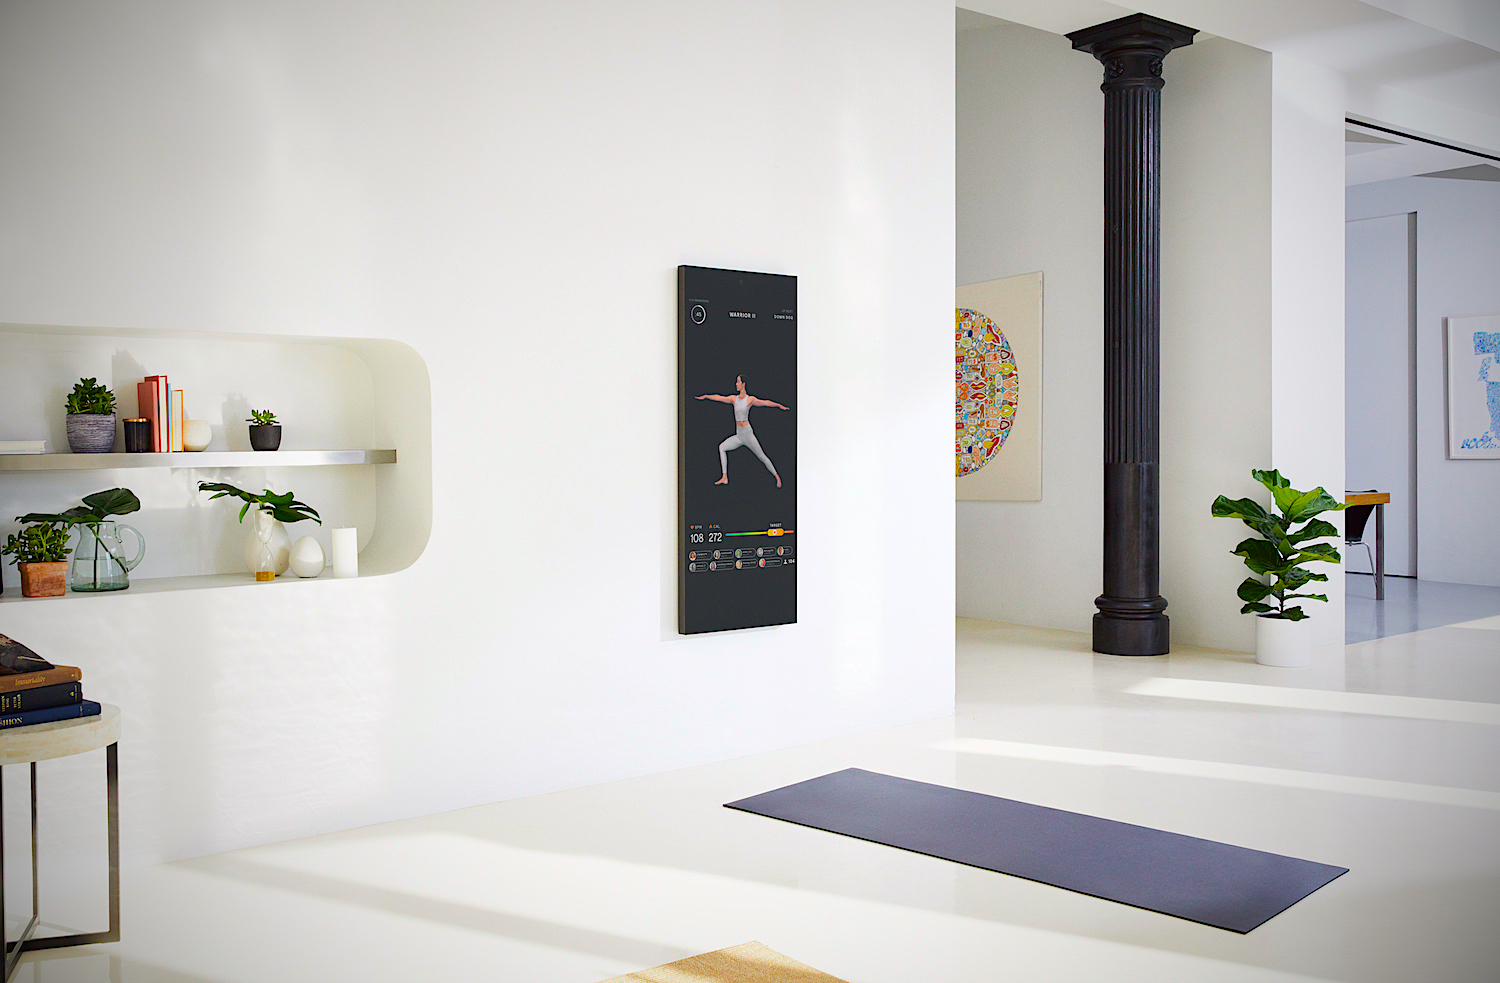 Smart fitness mirror on wall